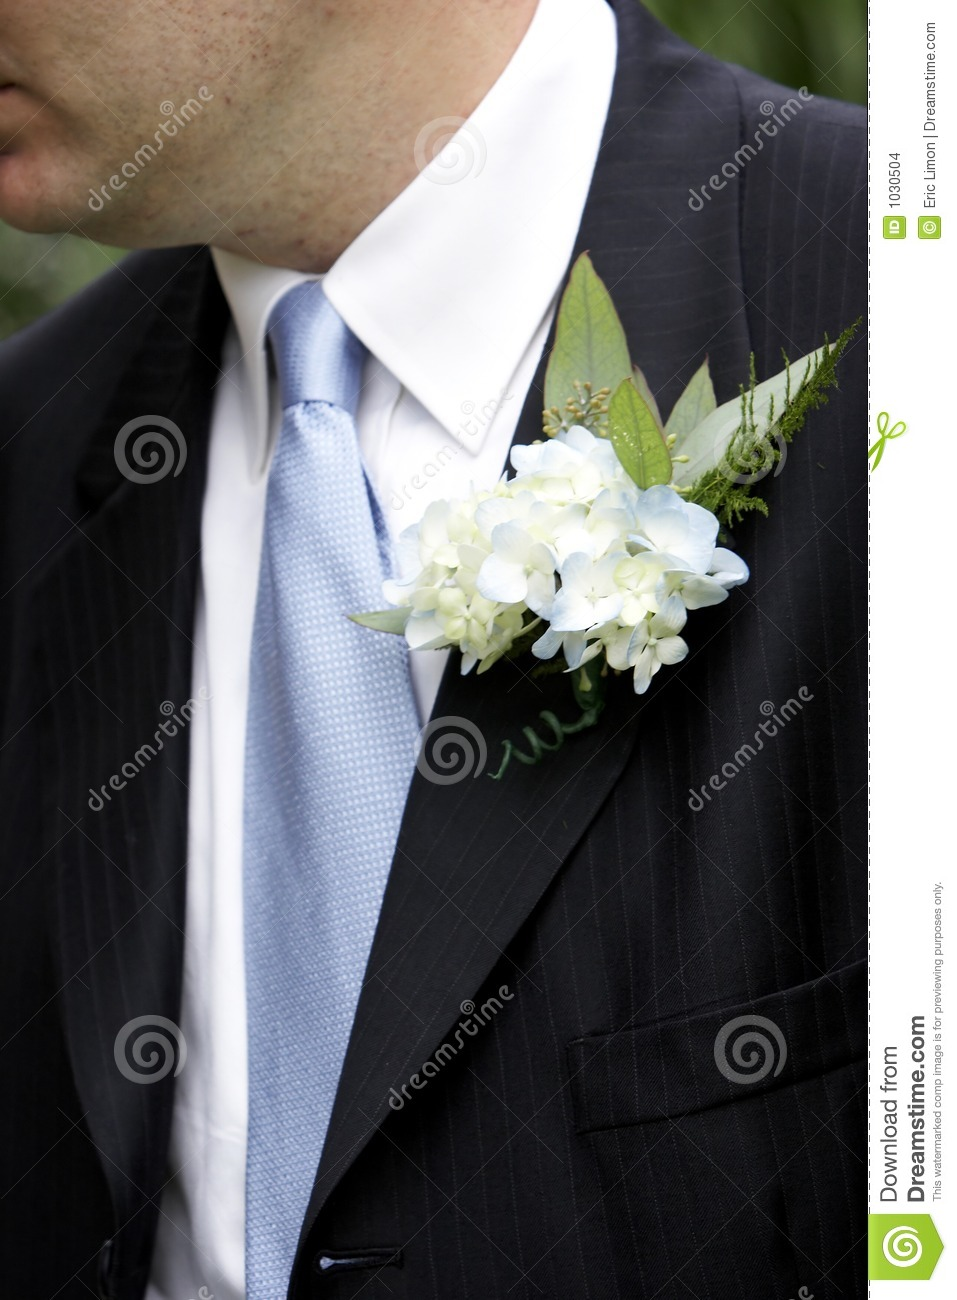 Grooms Corsage Stock Photo. Image Of Dress, Cute, Fashion